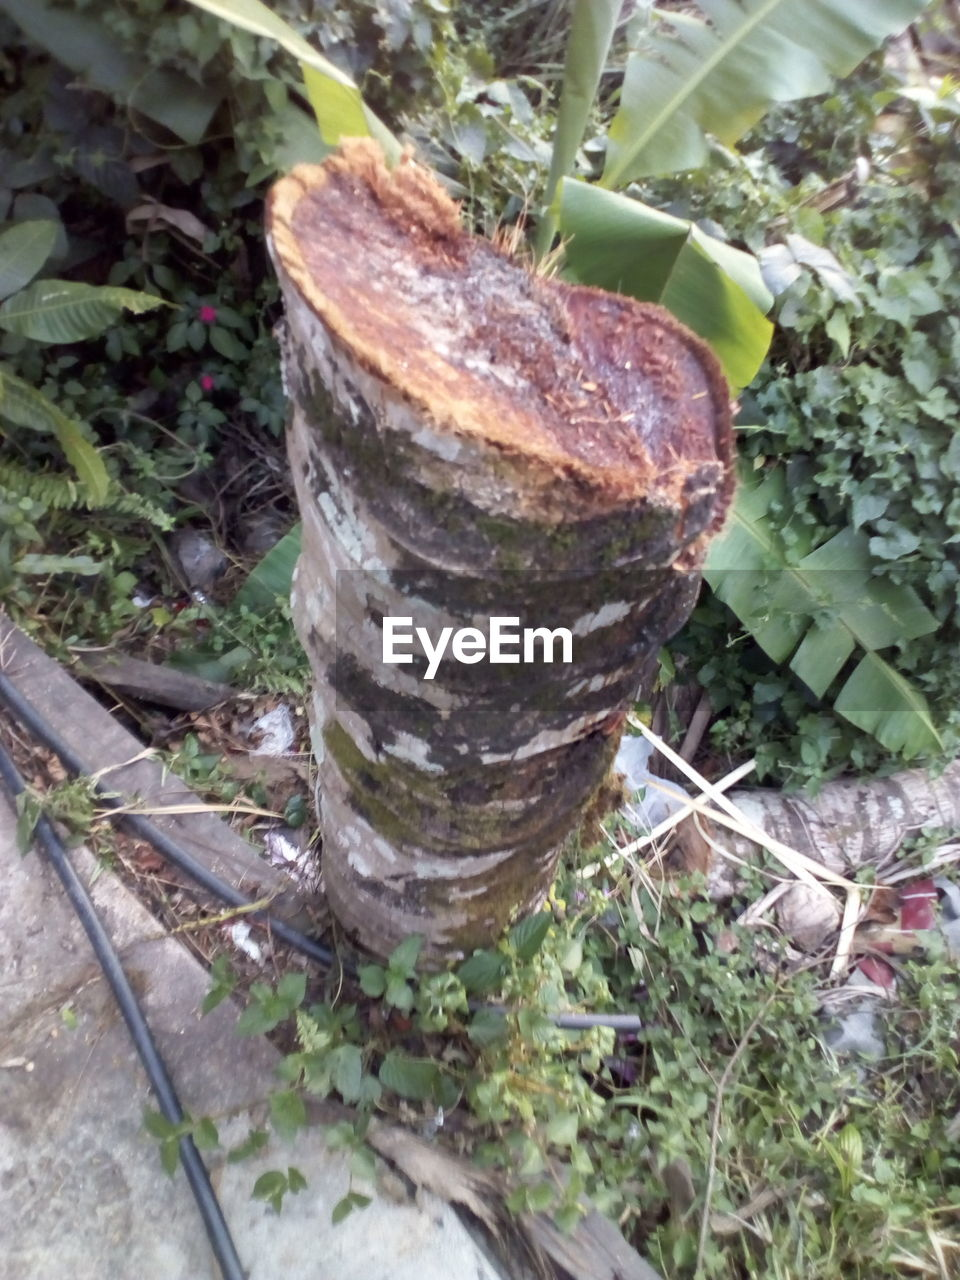 plant, growth, high angle view, nature, day, land, no people, close-up, plant part, leaf, outdoors, field, tree, forest, green color, wood - material, focus on foreground, selective focus, wood, tree trunk